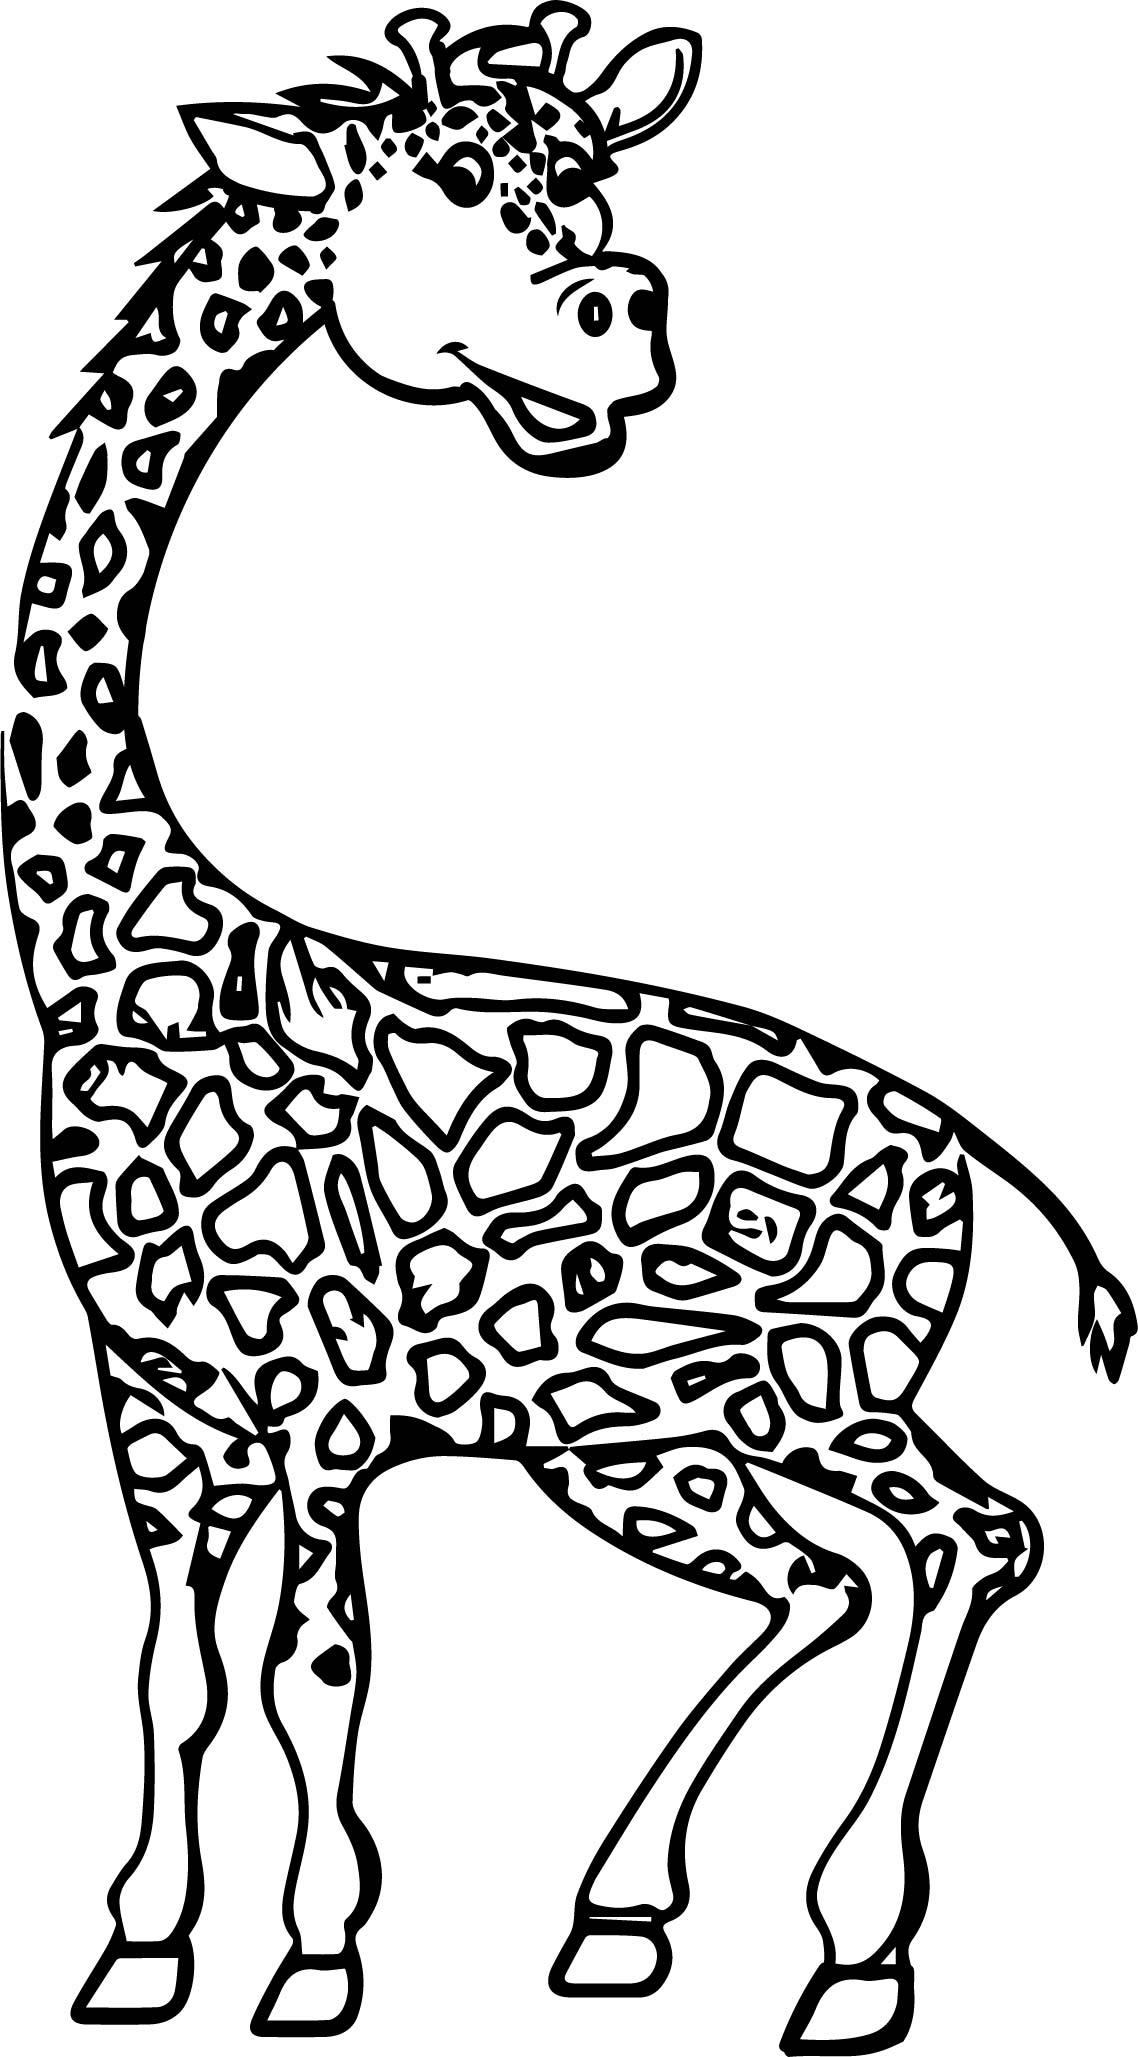 Giraffe Obedient Coloring Page | Wecoloringpage.com